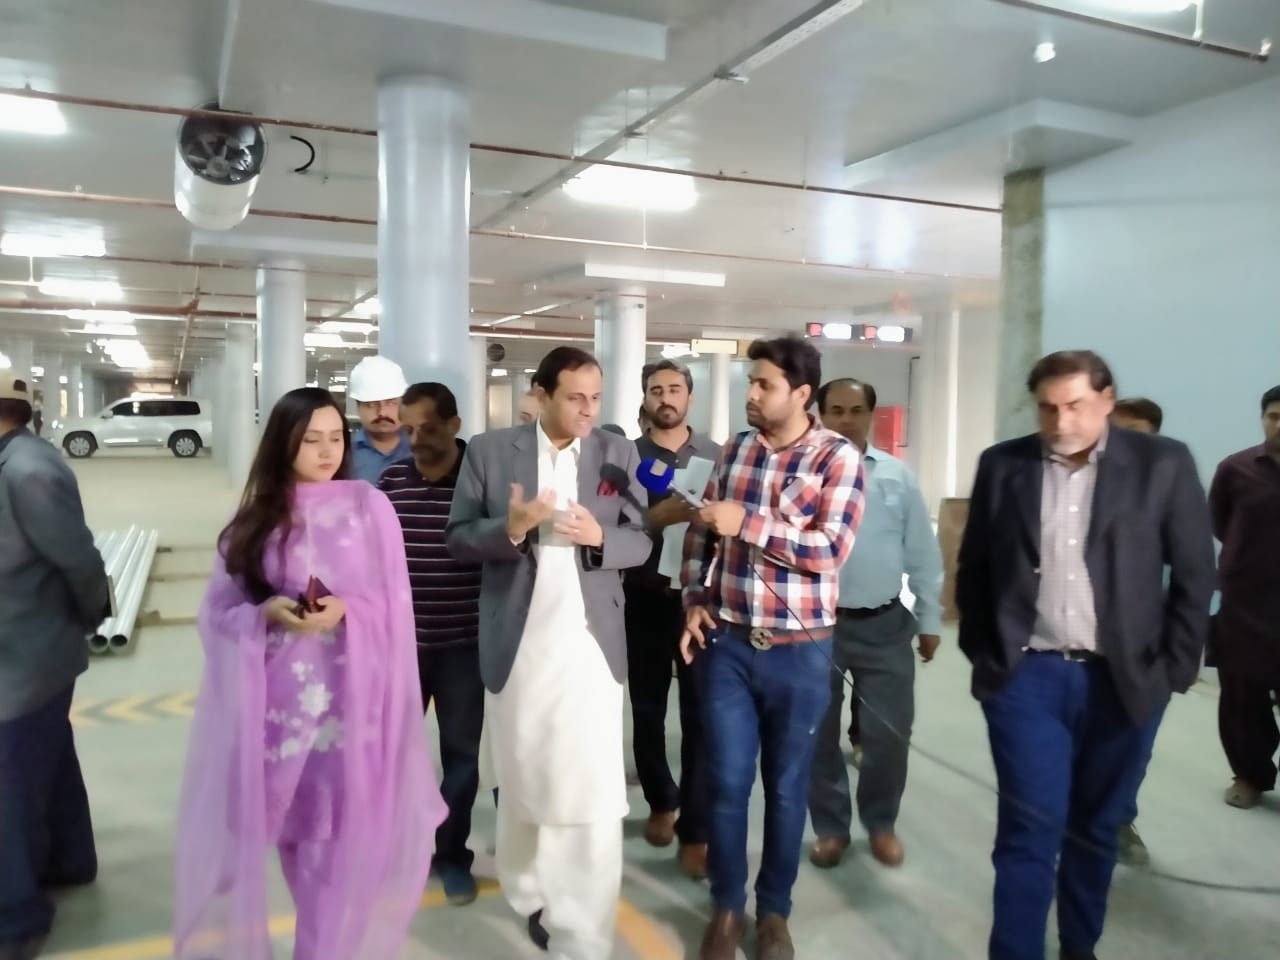 Mr. Murtaza Wahab, Advisor to Honorable Chief Minister Sindh and Spokesperson for the Sindh Government visited The Underground Parking Plaza Site in Saddar Area to review the progress of KNIP Intervention